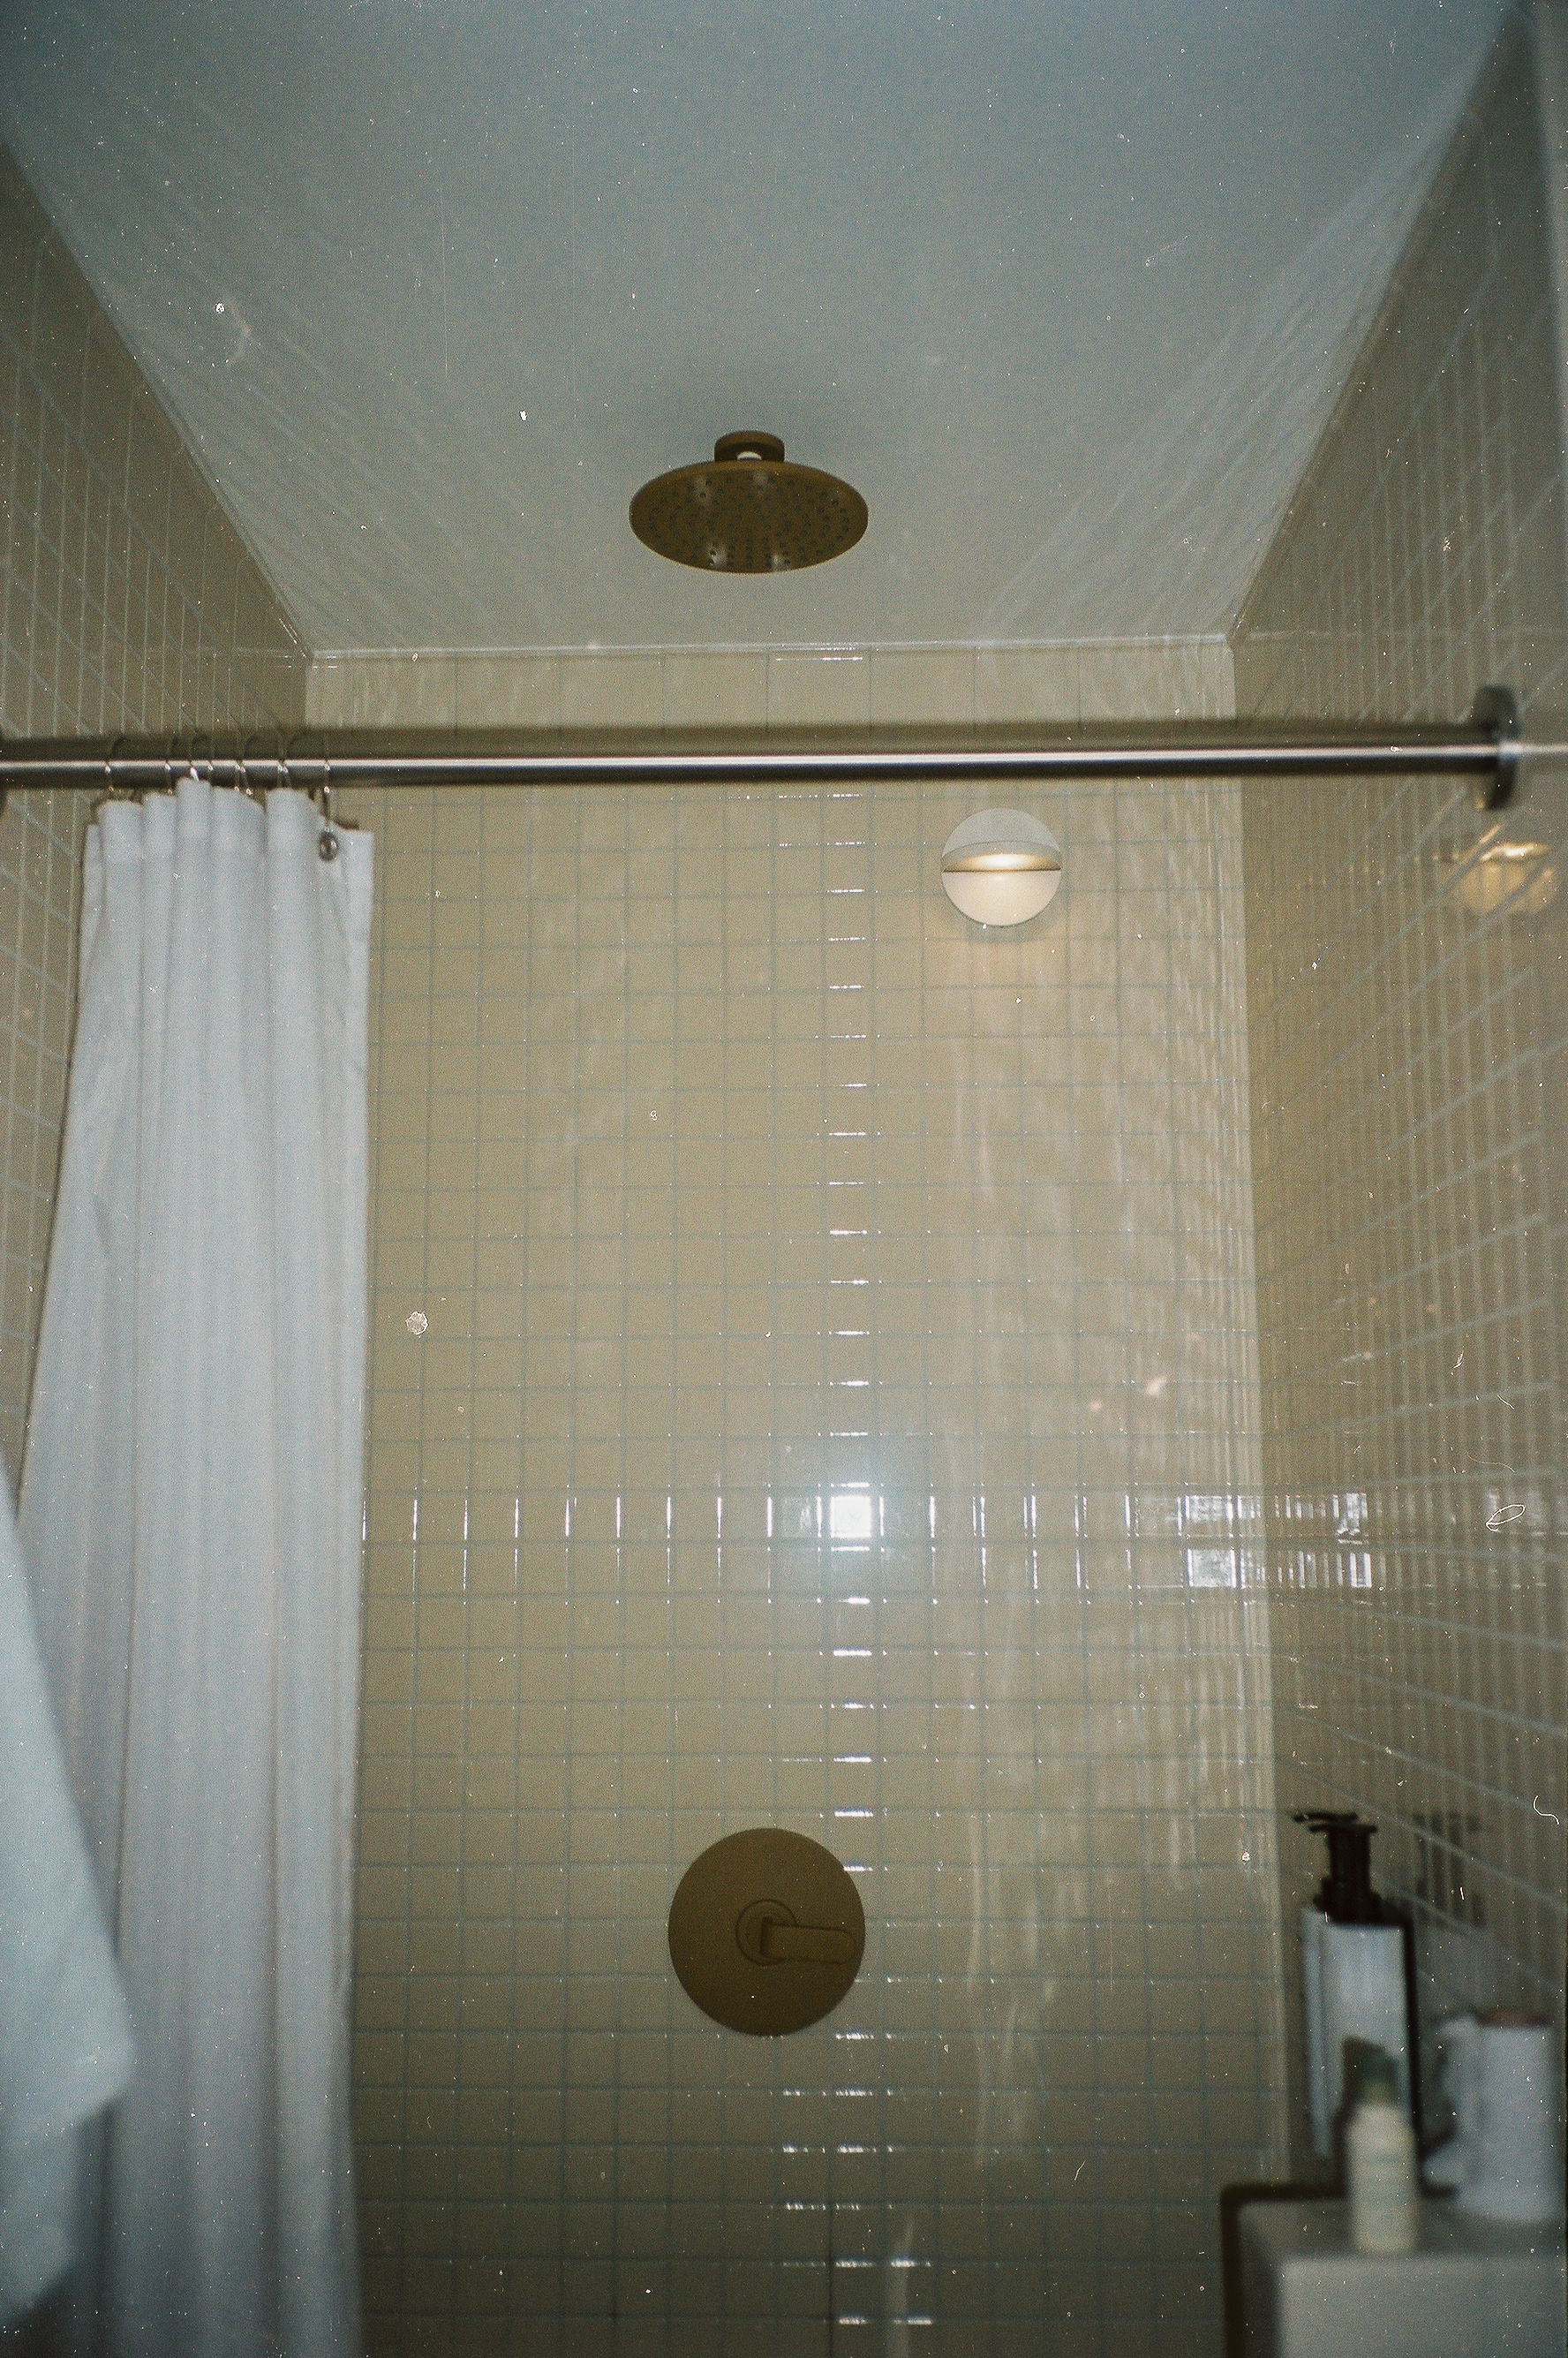 Look at the gold shower head/tap <3